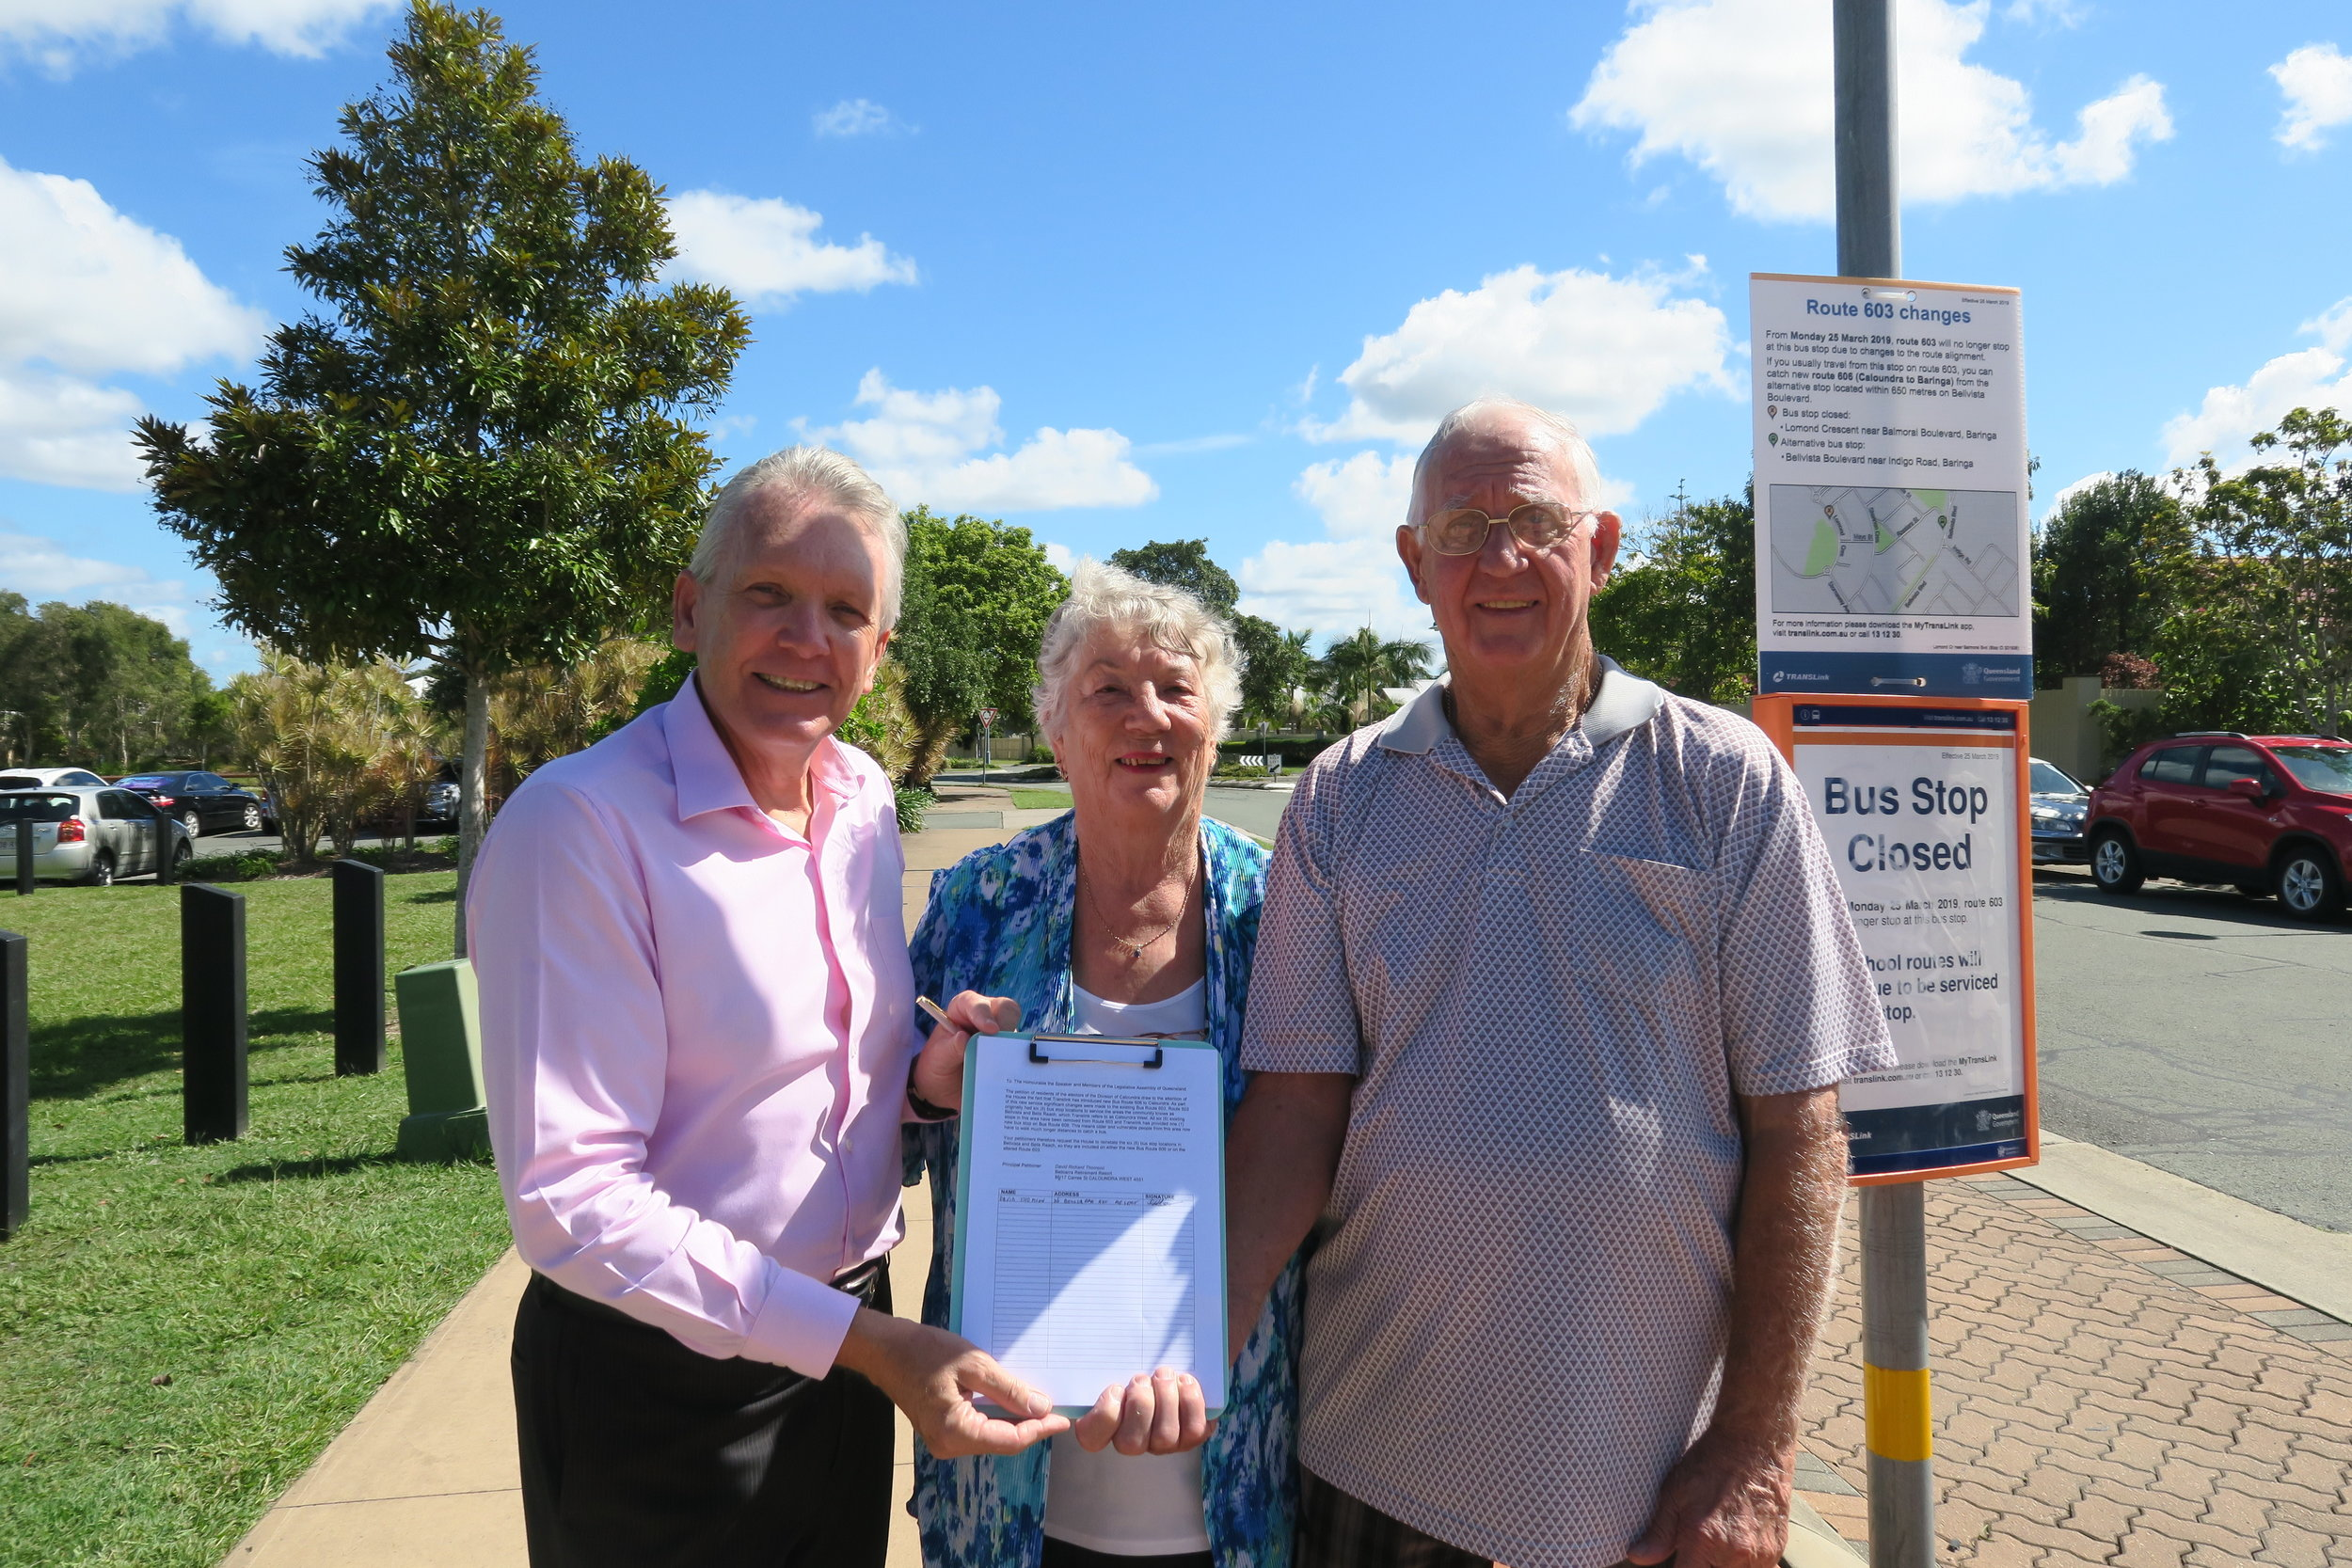 Mark McArdle sponsored the community petition launched by Bellvista resident David Thomson and his wife Robyn